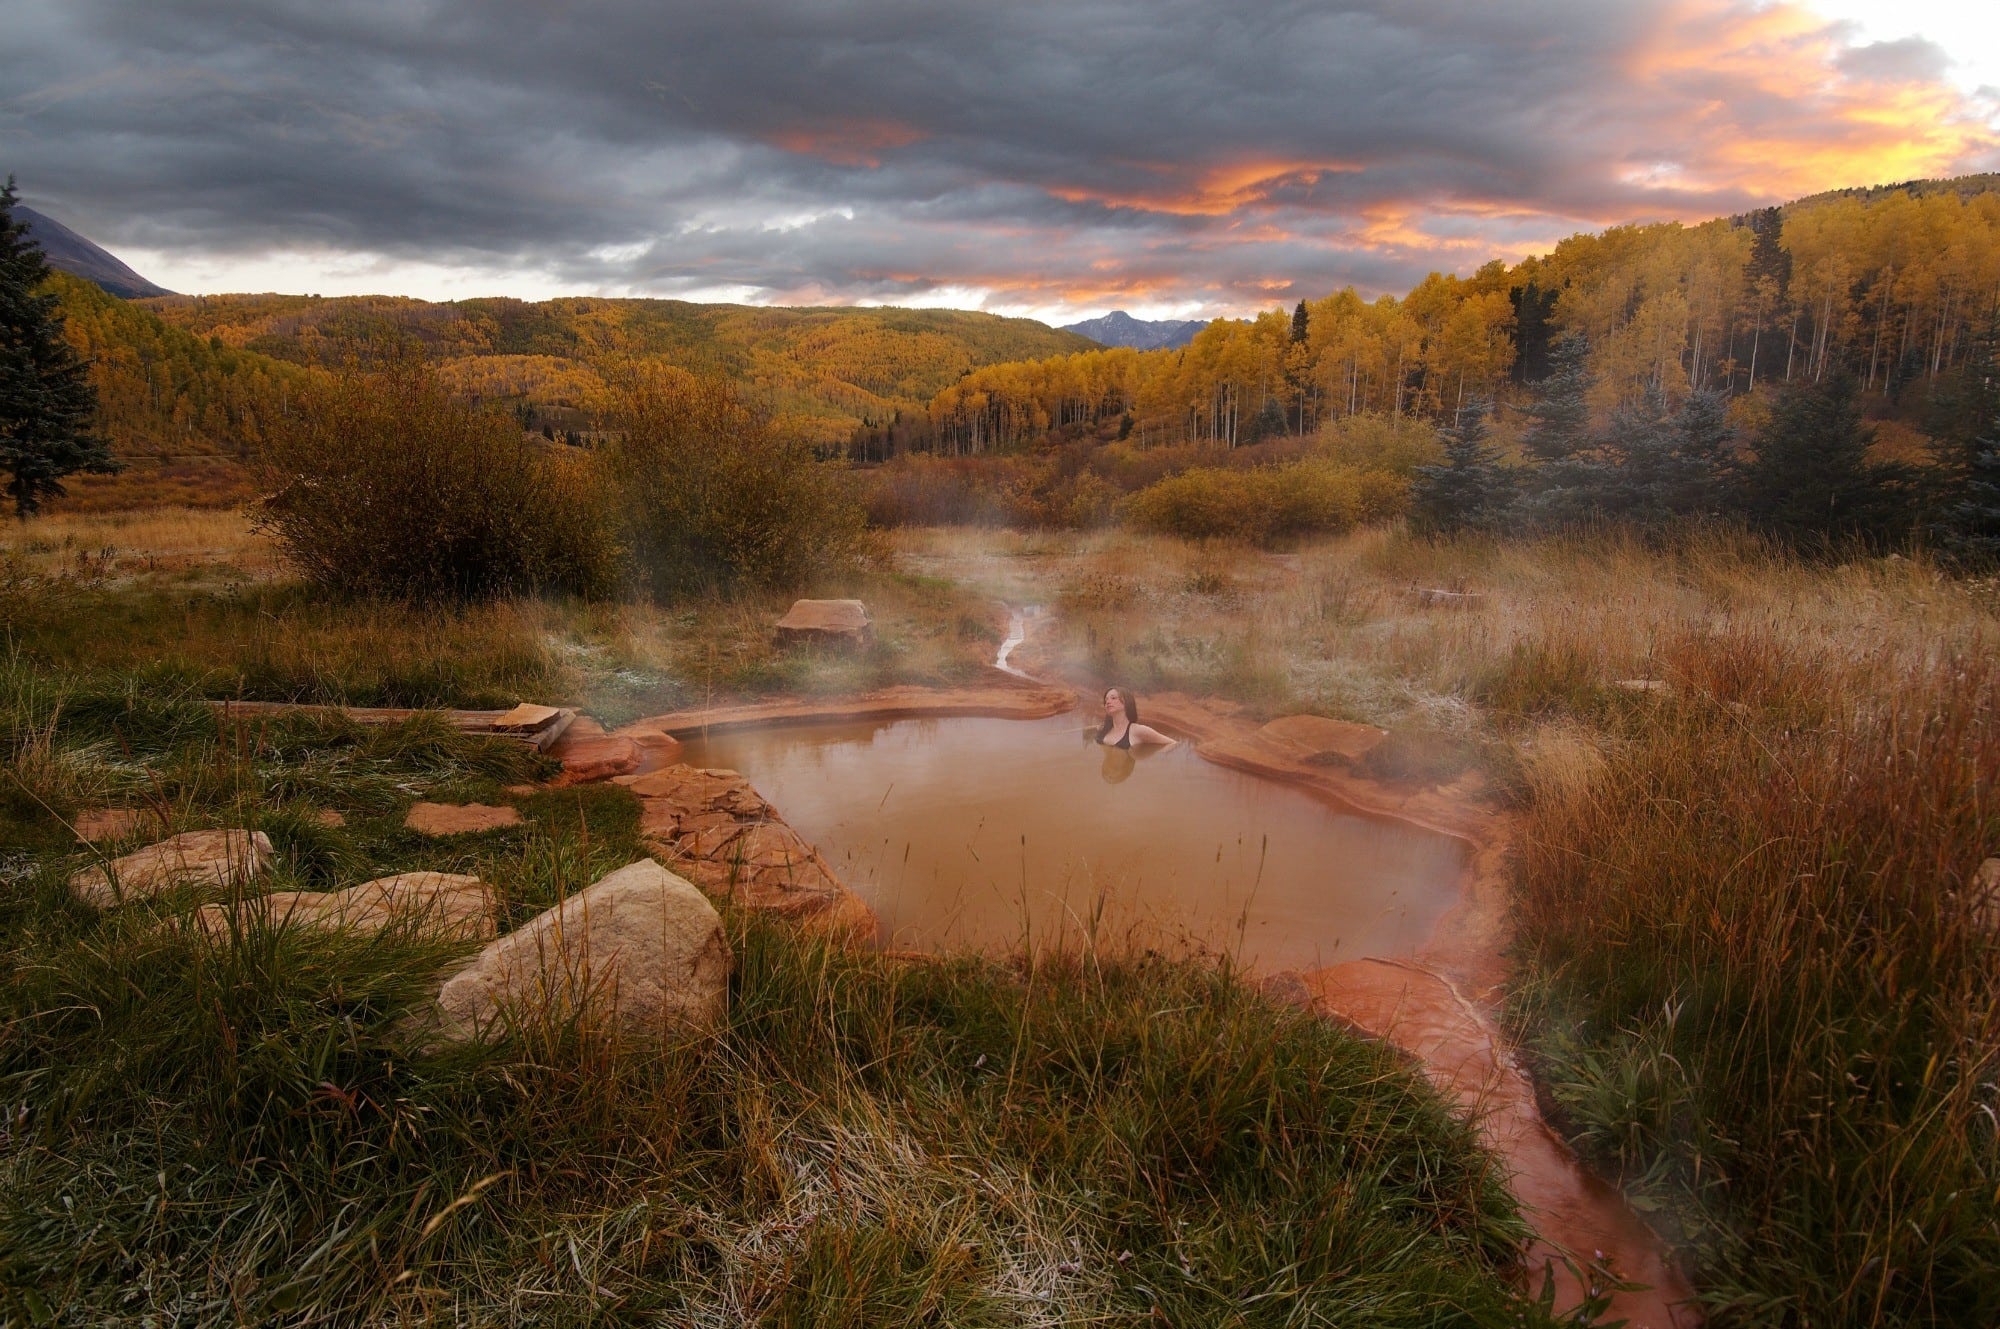 Outdoor soak at the bathhouse, Dunton Hot Springs, Colorado ~ 10 Incredible Hot Springs for Families